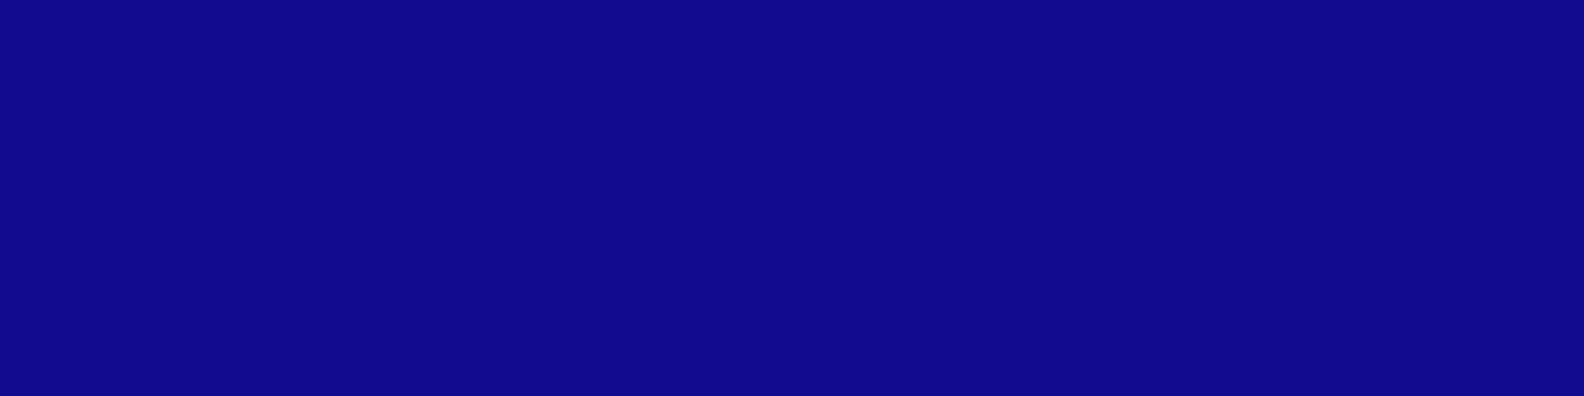 1584x396 Ultramarine Solid Color Background